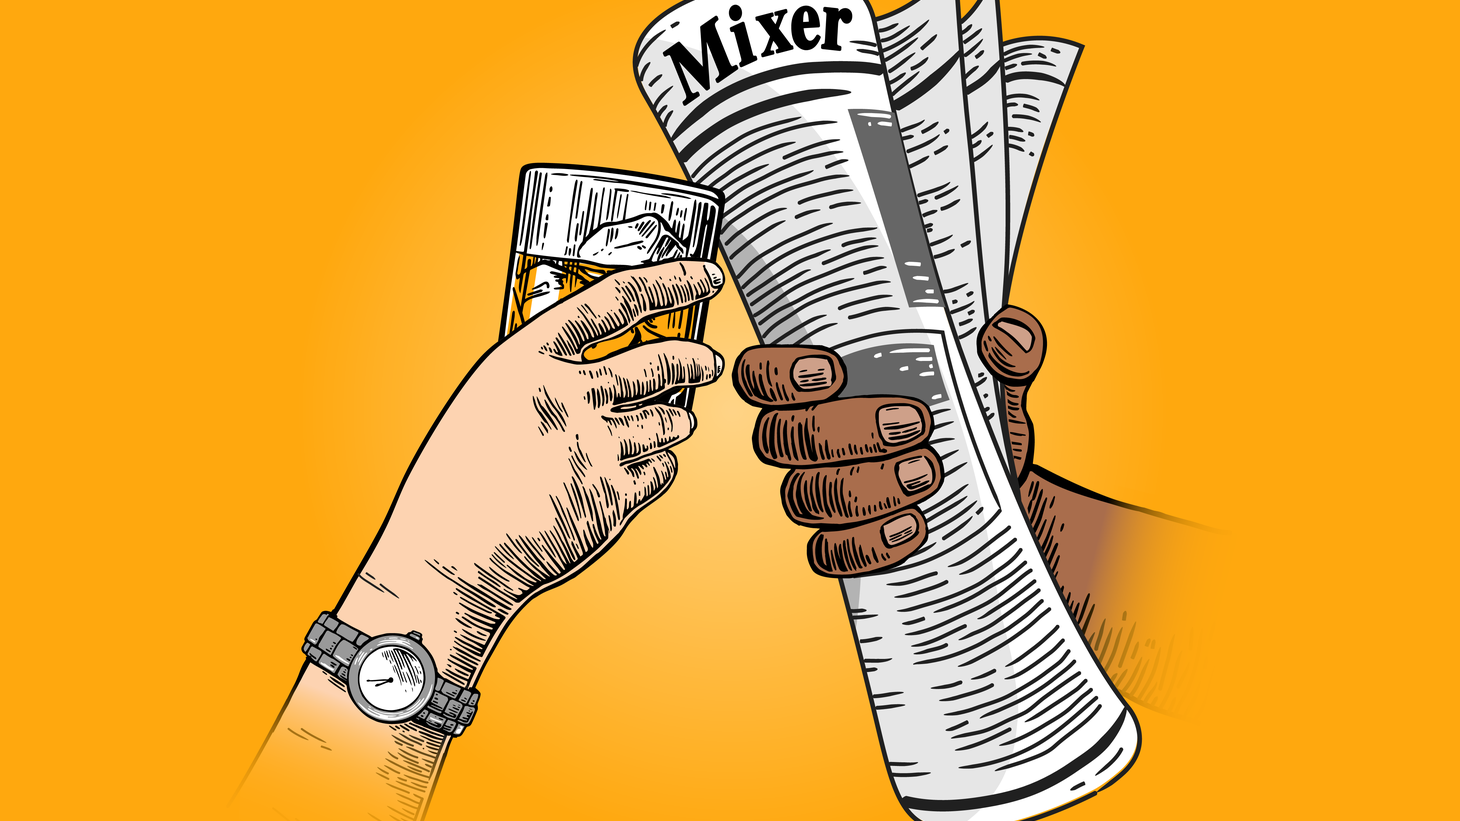 Gene Maddaus from the LA Weekly and Seema Mehta from the LA Times join Steve Chiotakis for this week's mixer.